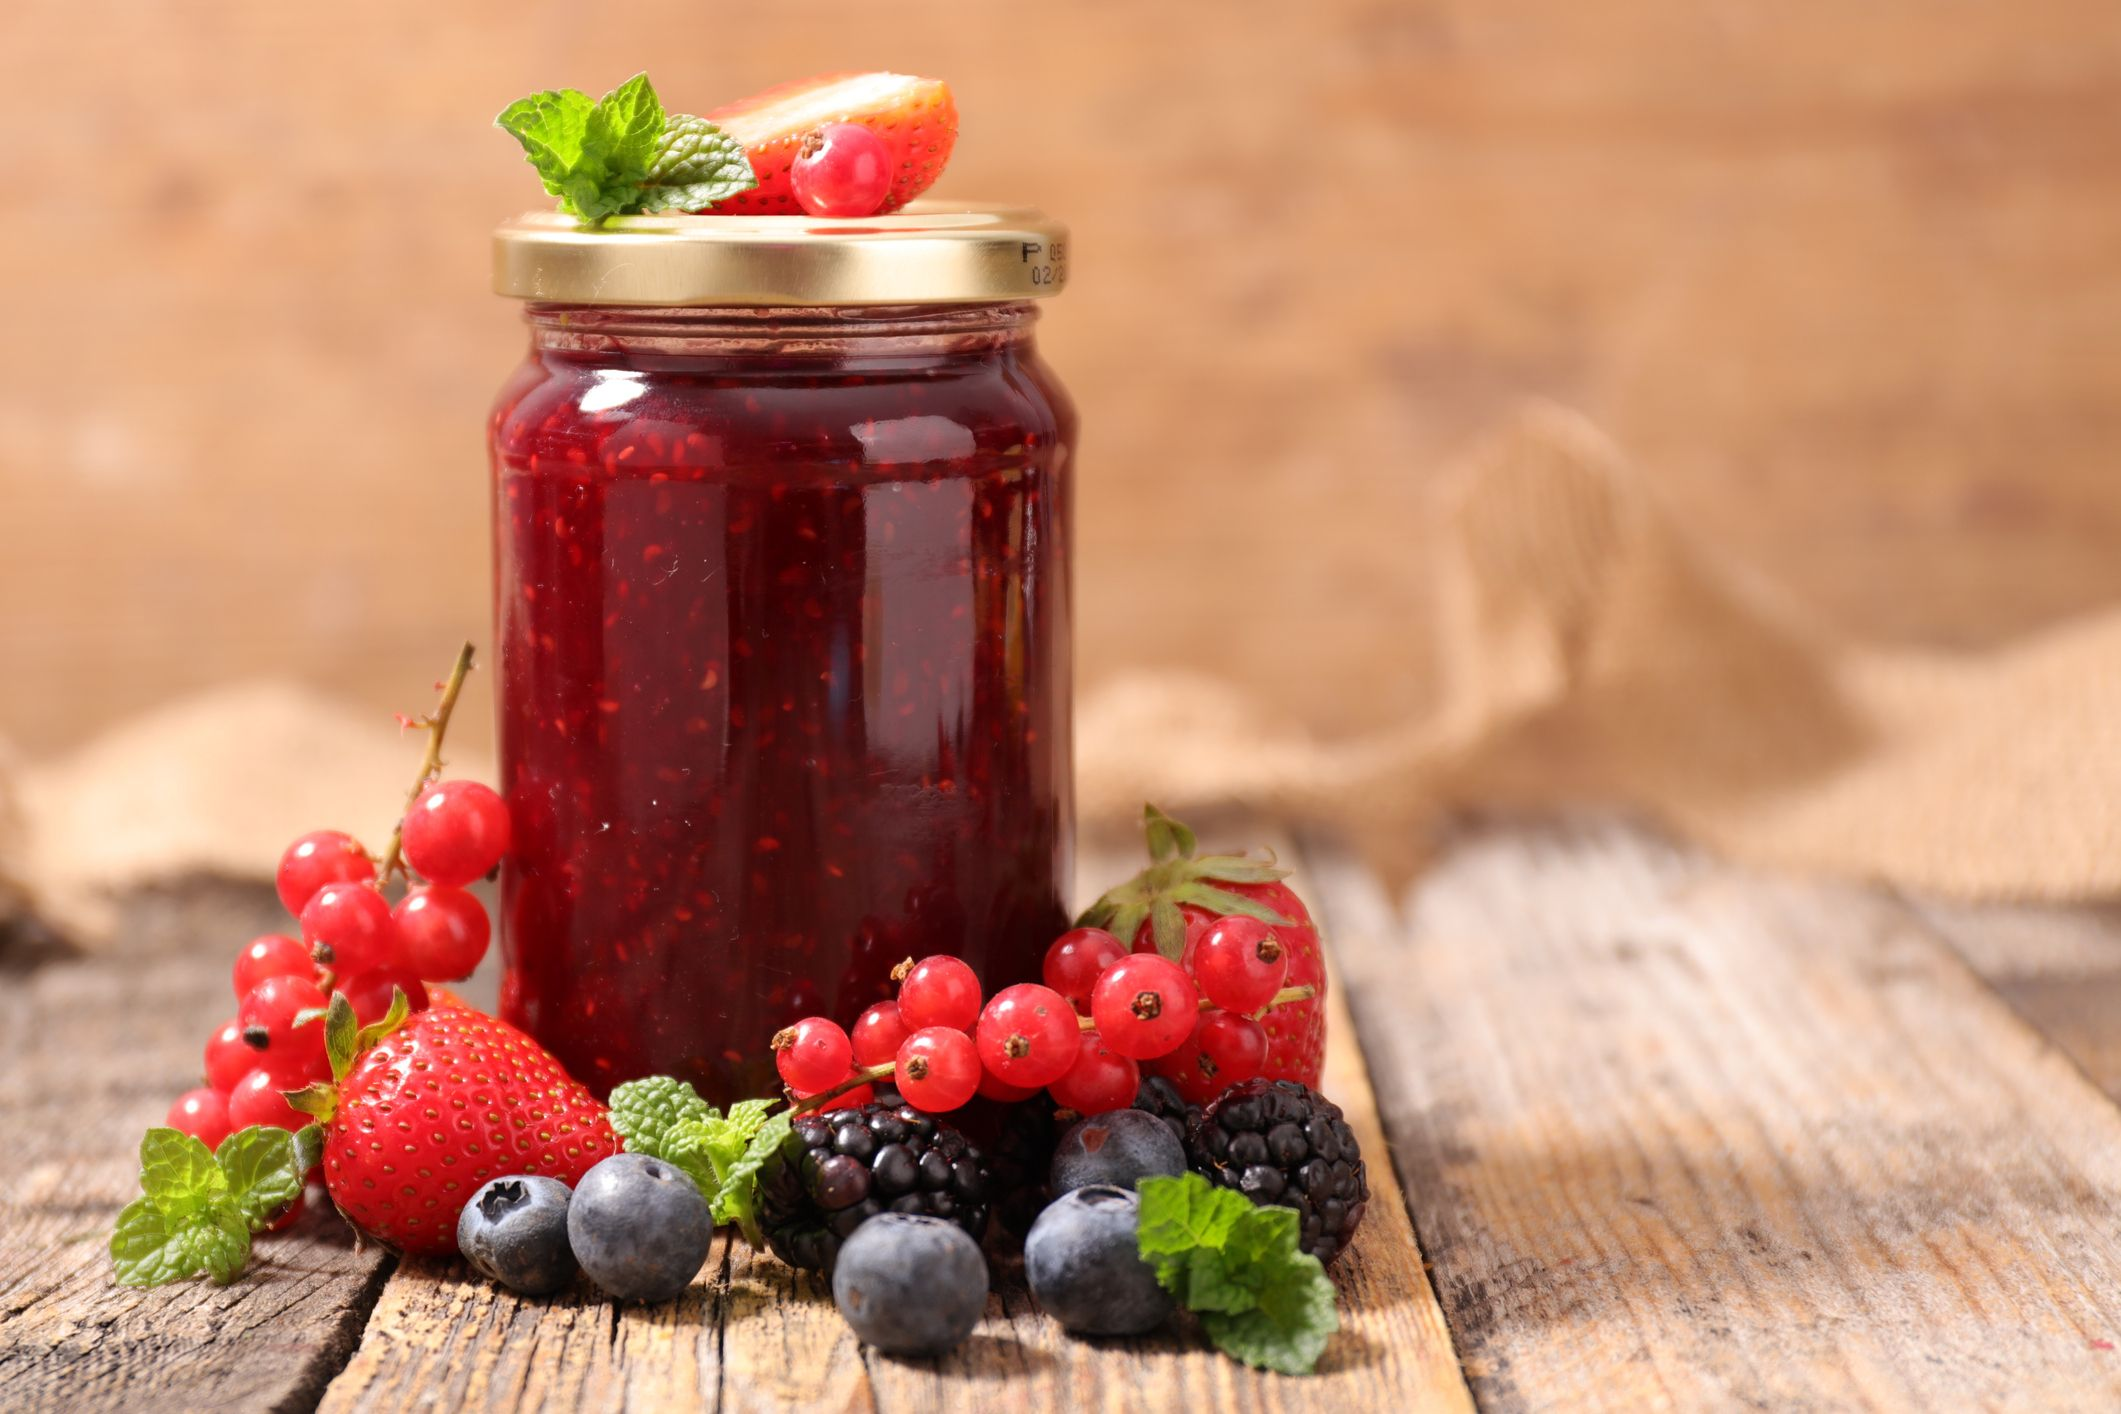 Jam jar with berry fruits